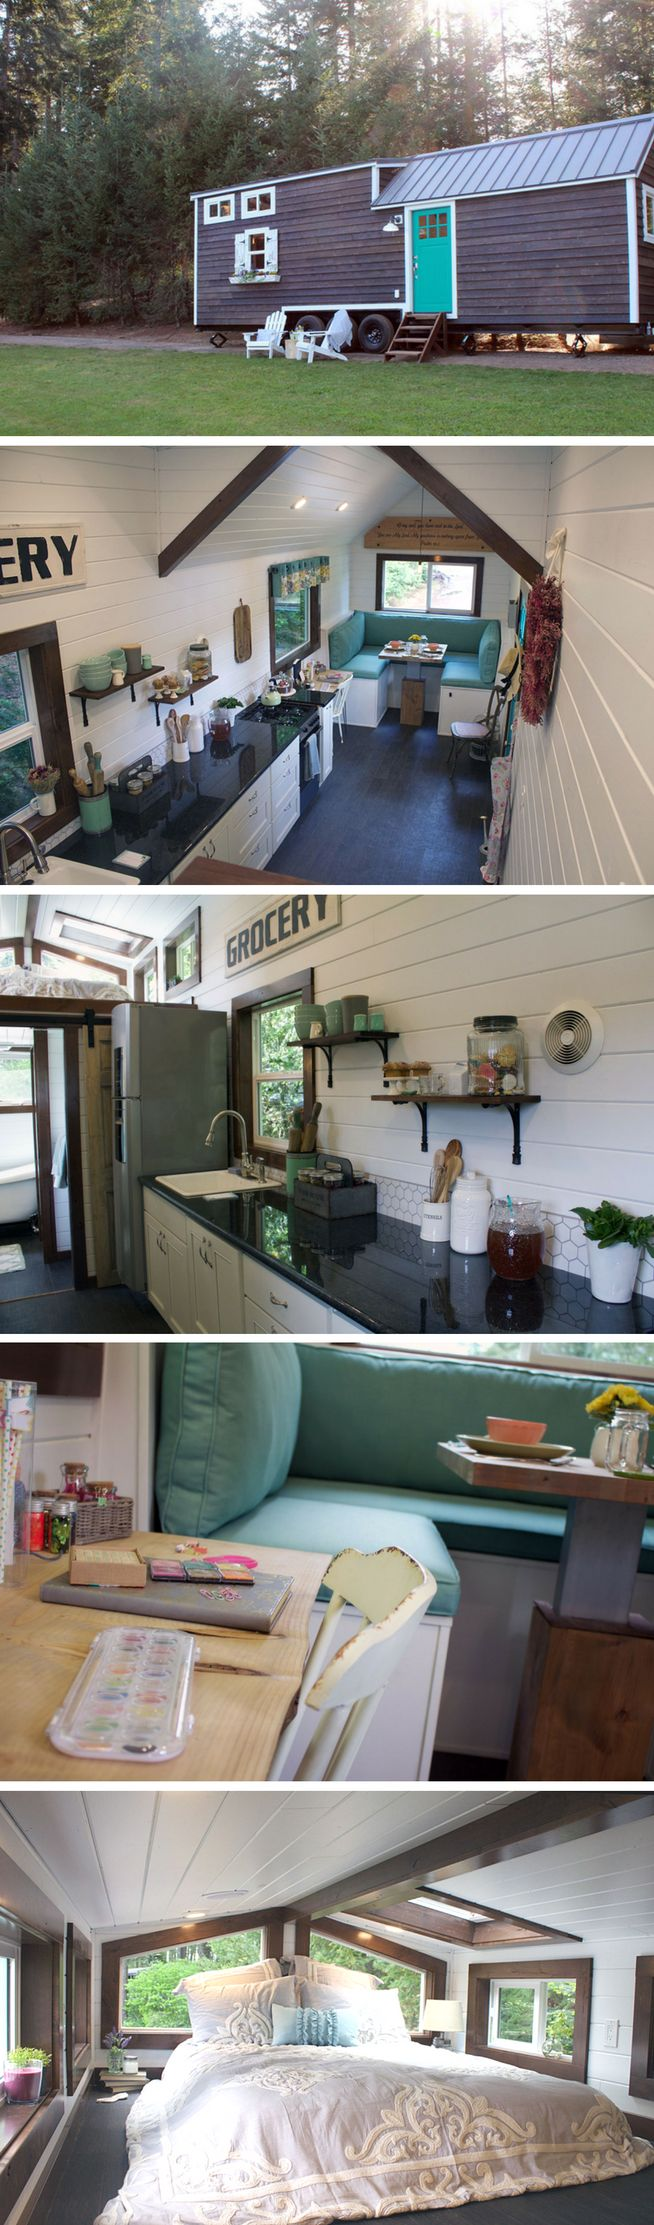 3 bedroom loft house   best Tiny house small space images on Pinterest  Tiny house